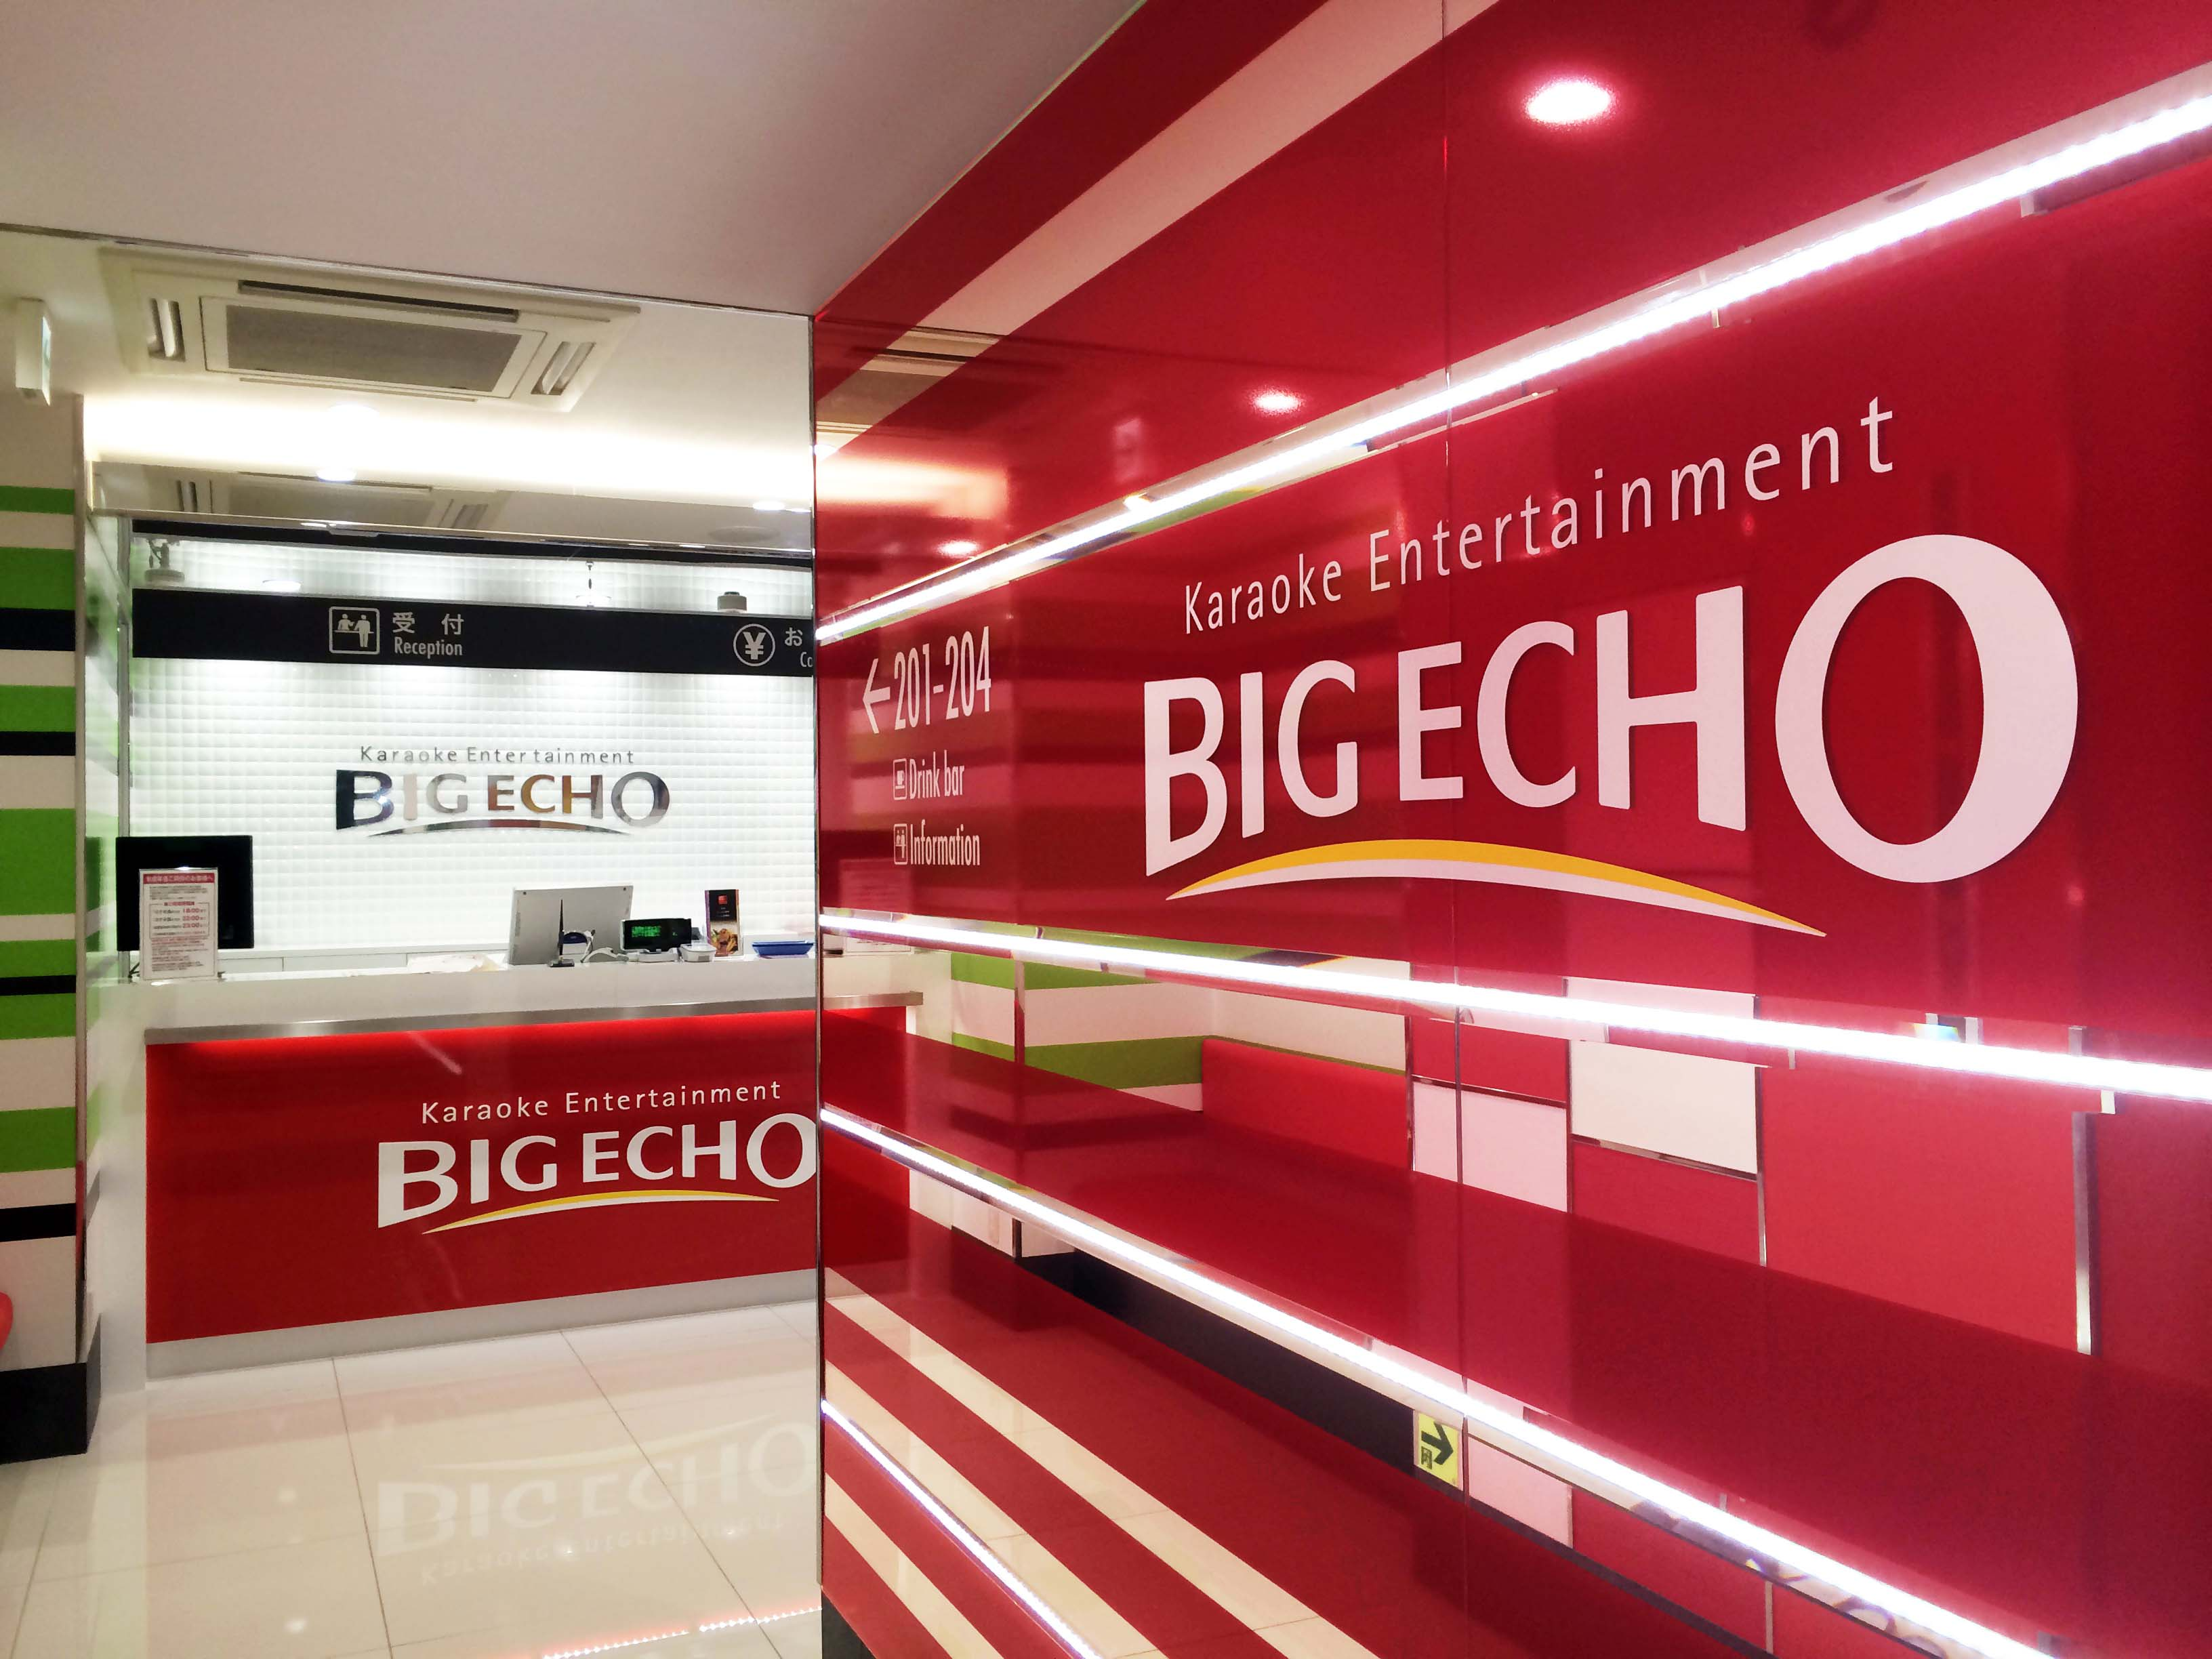 WORKSに『BIG-ECHO 甲府駅南口中央店』様をアップしました。